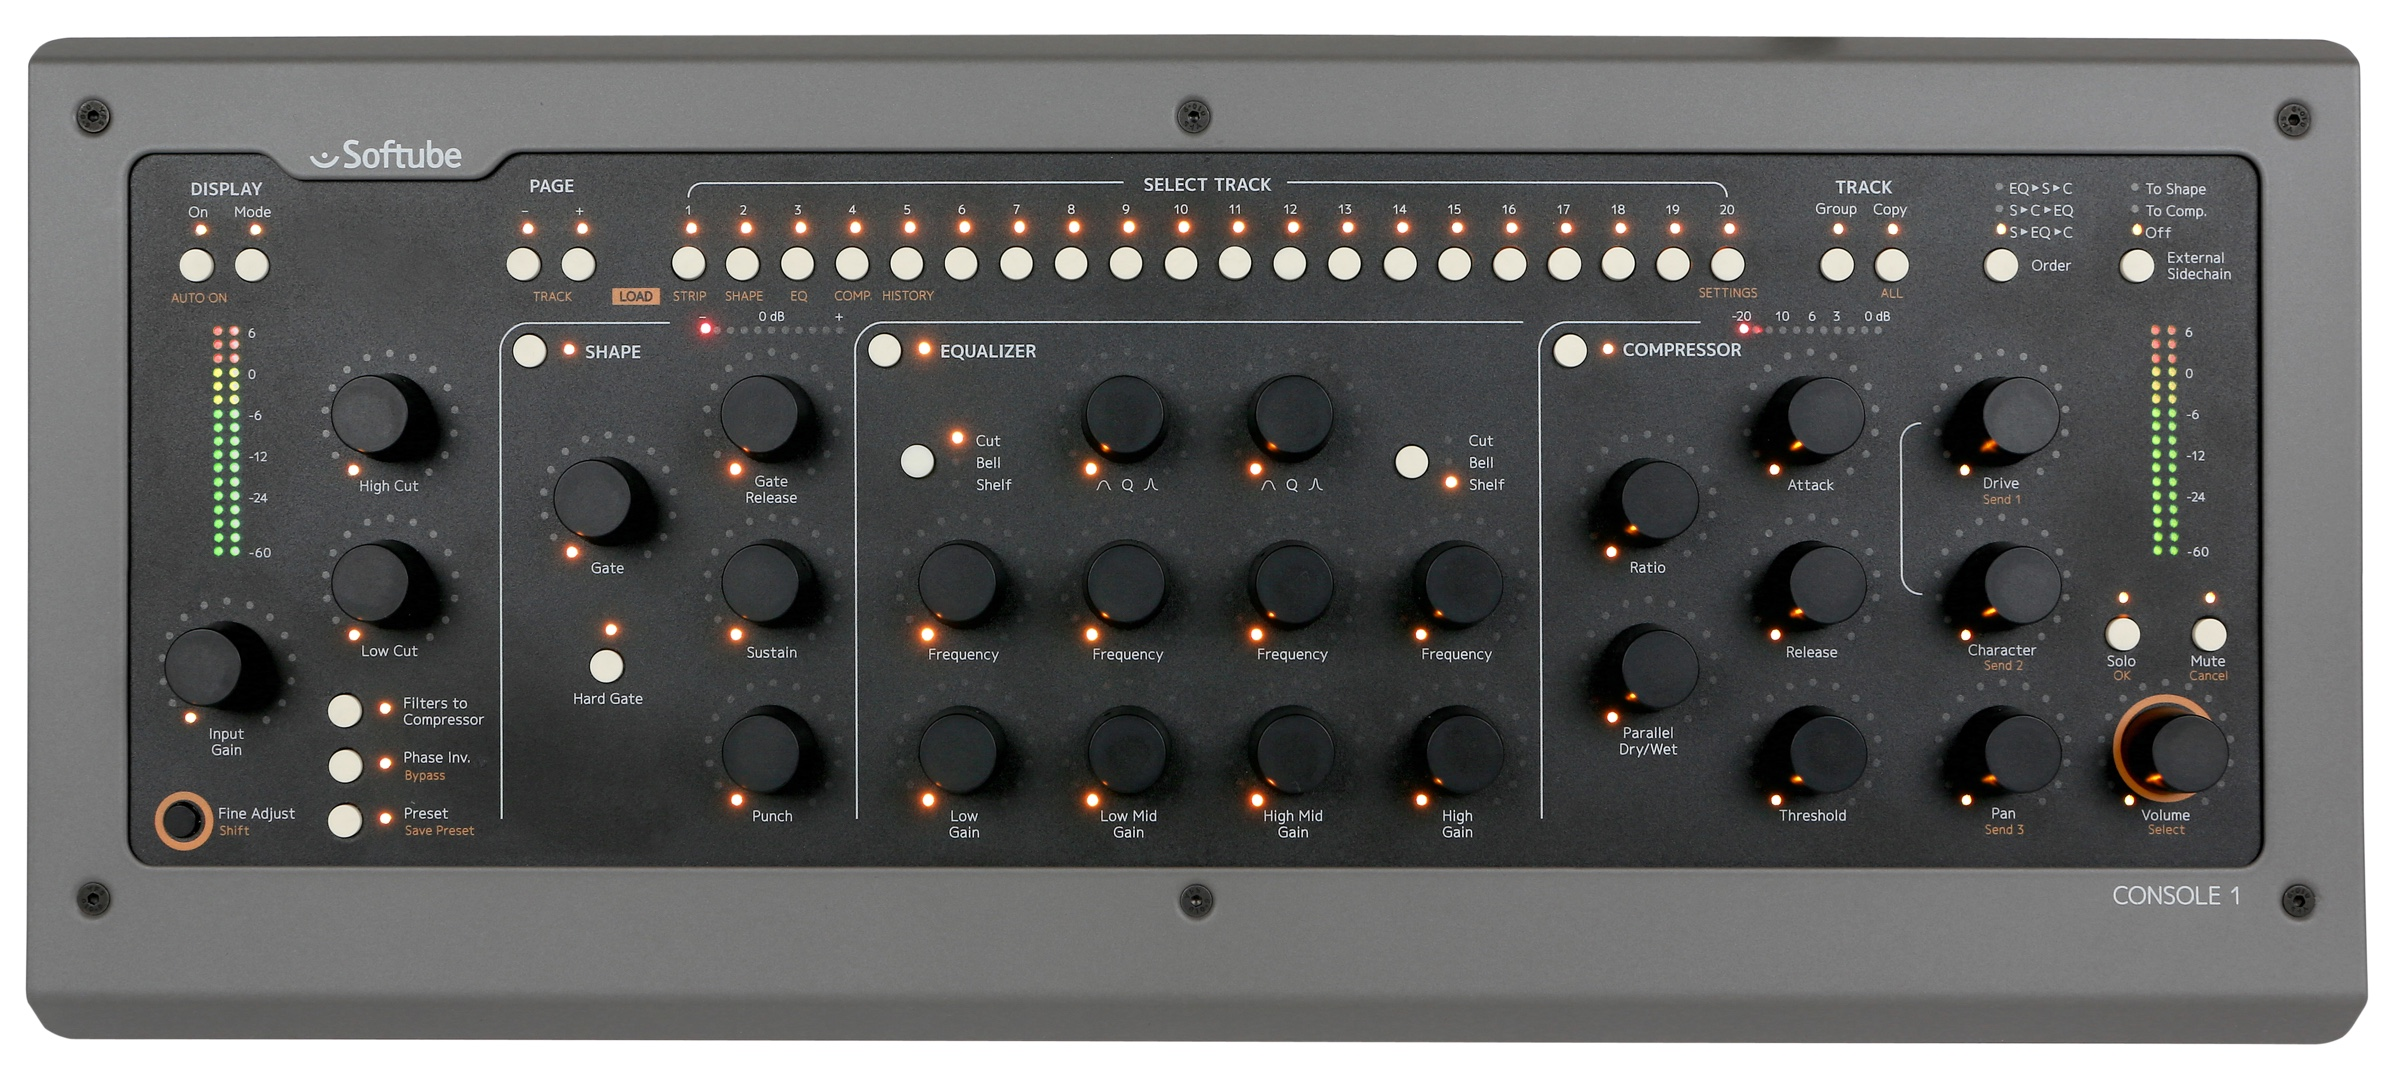 The $499 Softube Console 1 now looks like a great buy for